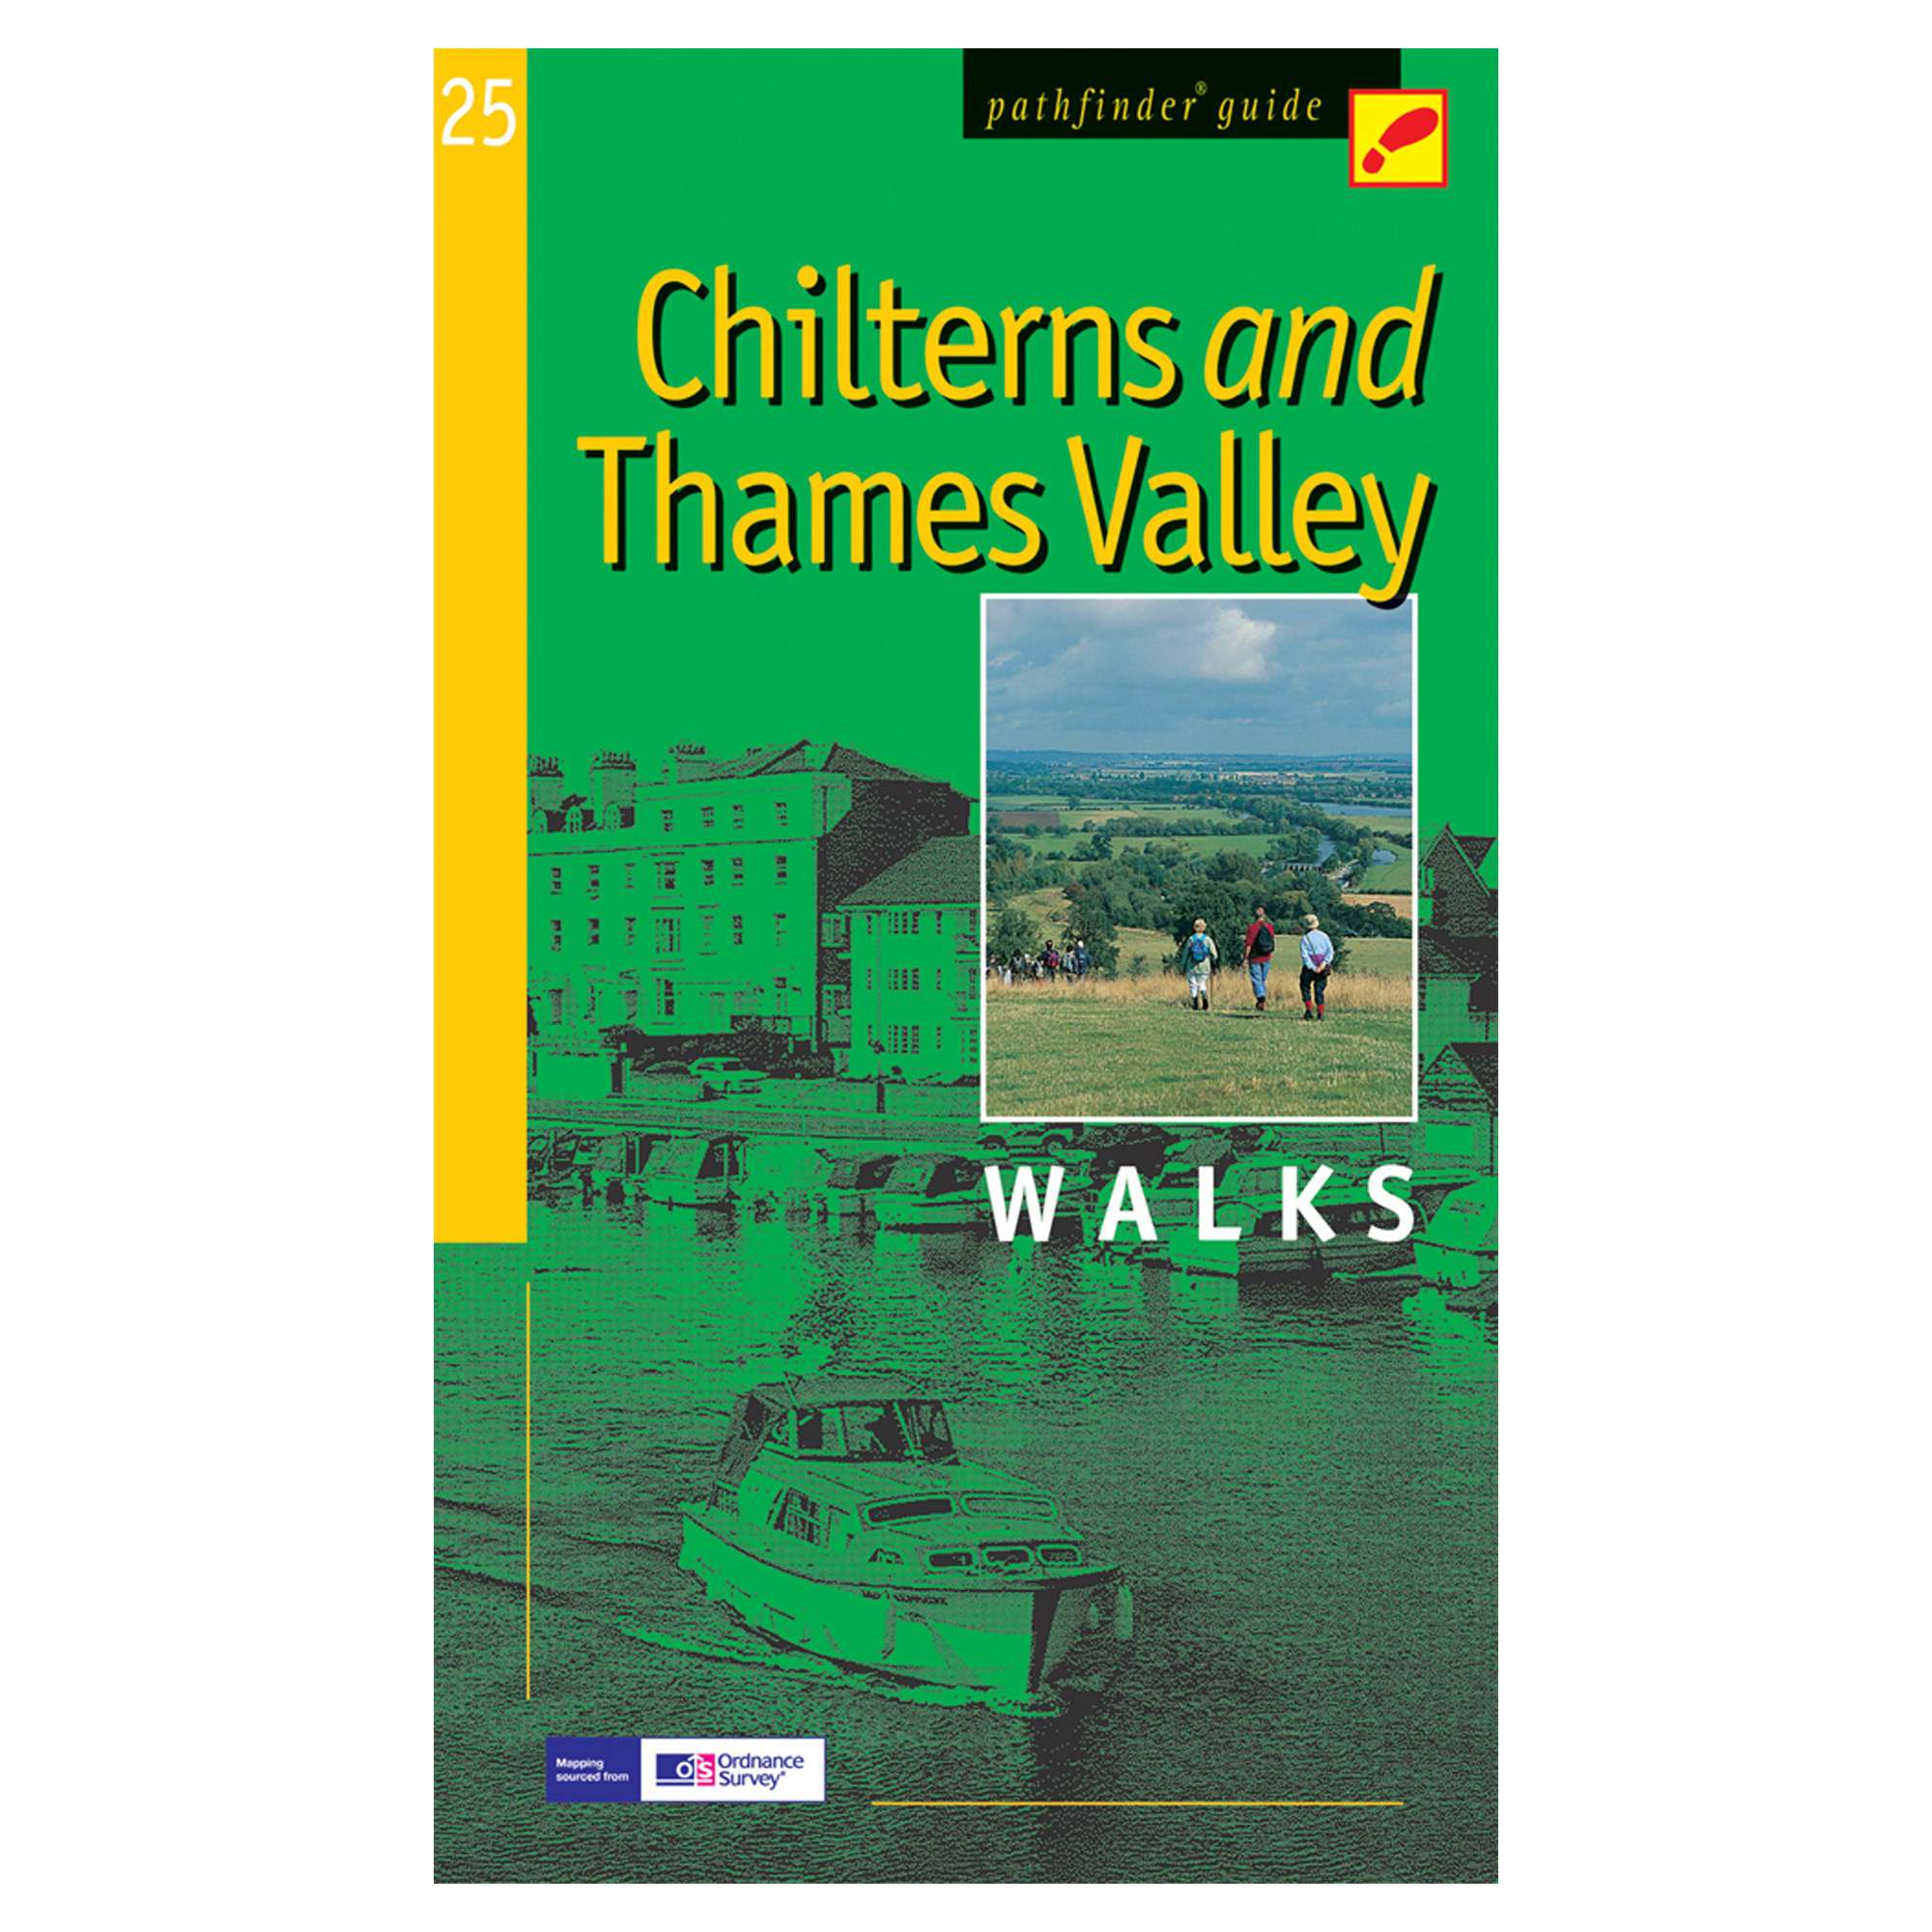 PATHFINDER Chilterns and Thames Valley Walks Guide